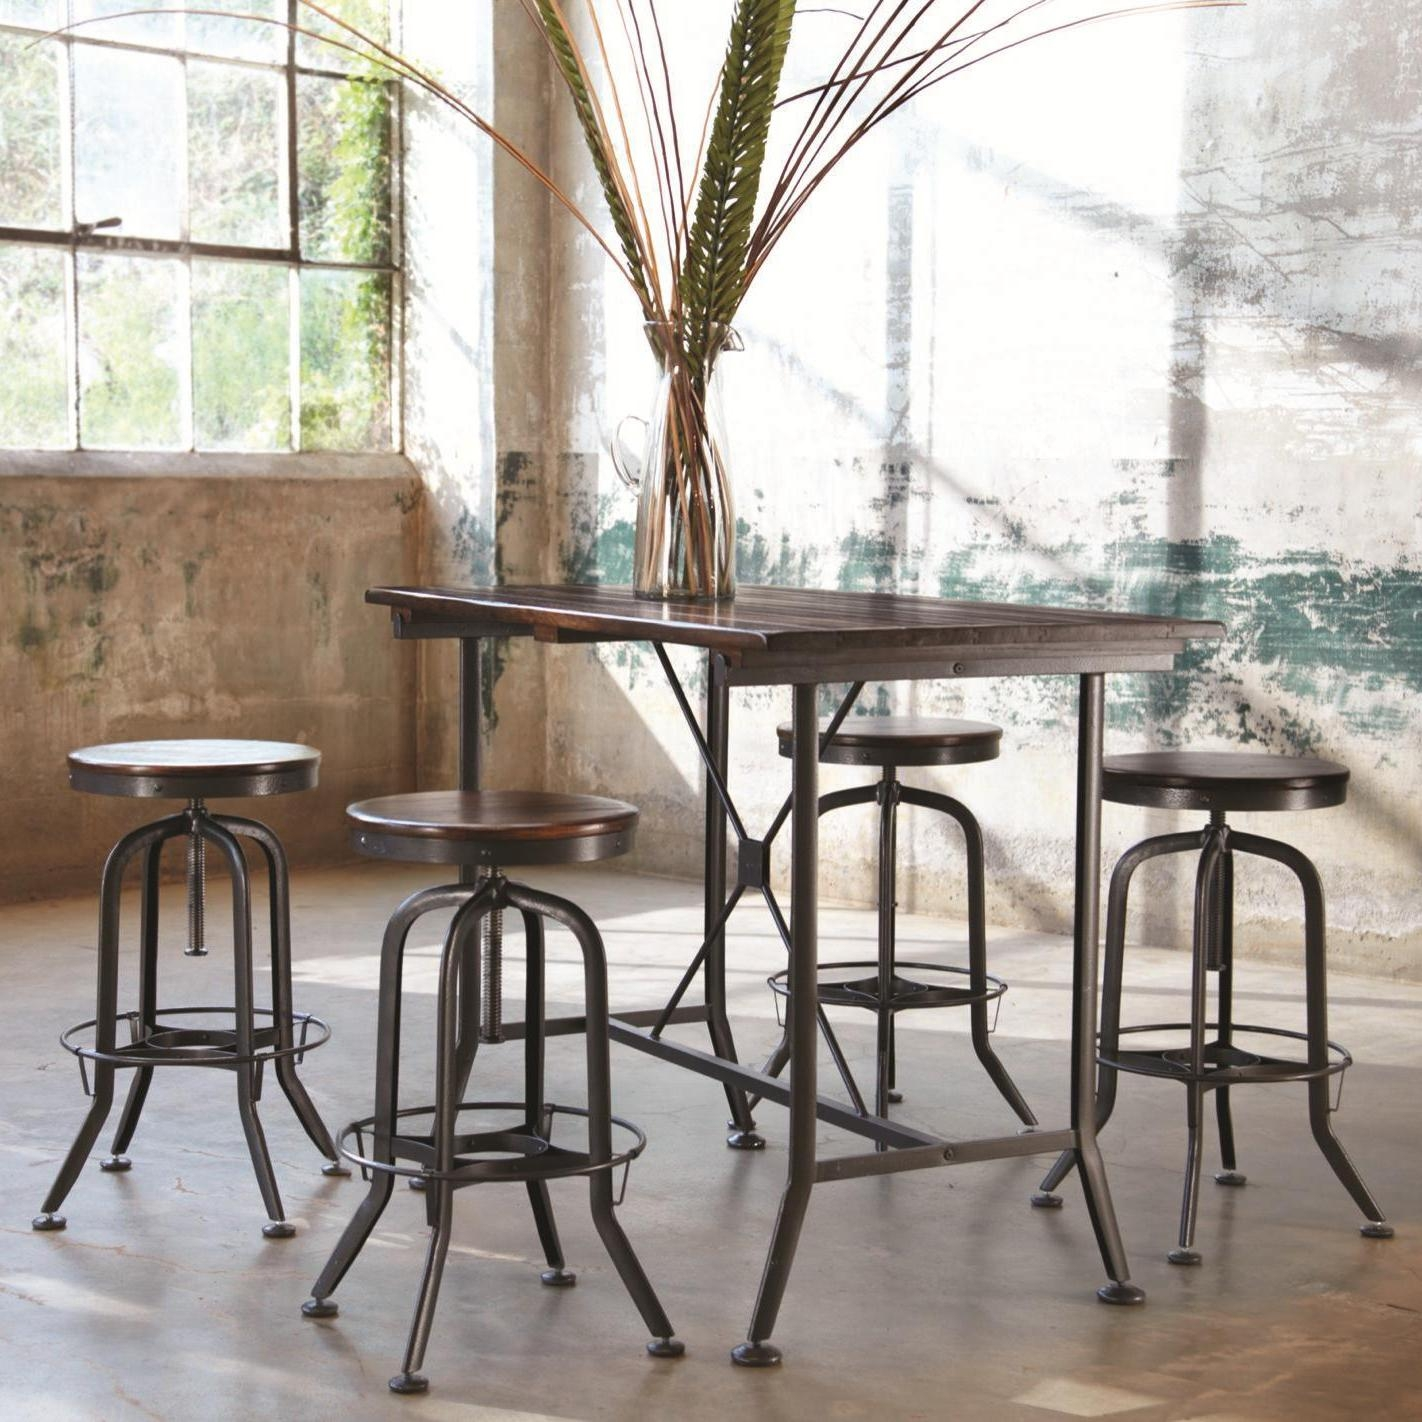 Hashleich Vintage Bar Stool Industrial Strength With